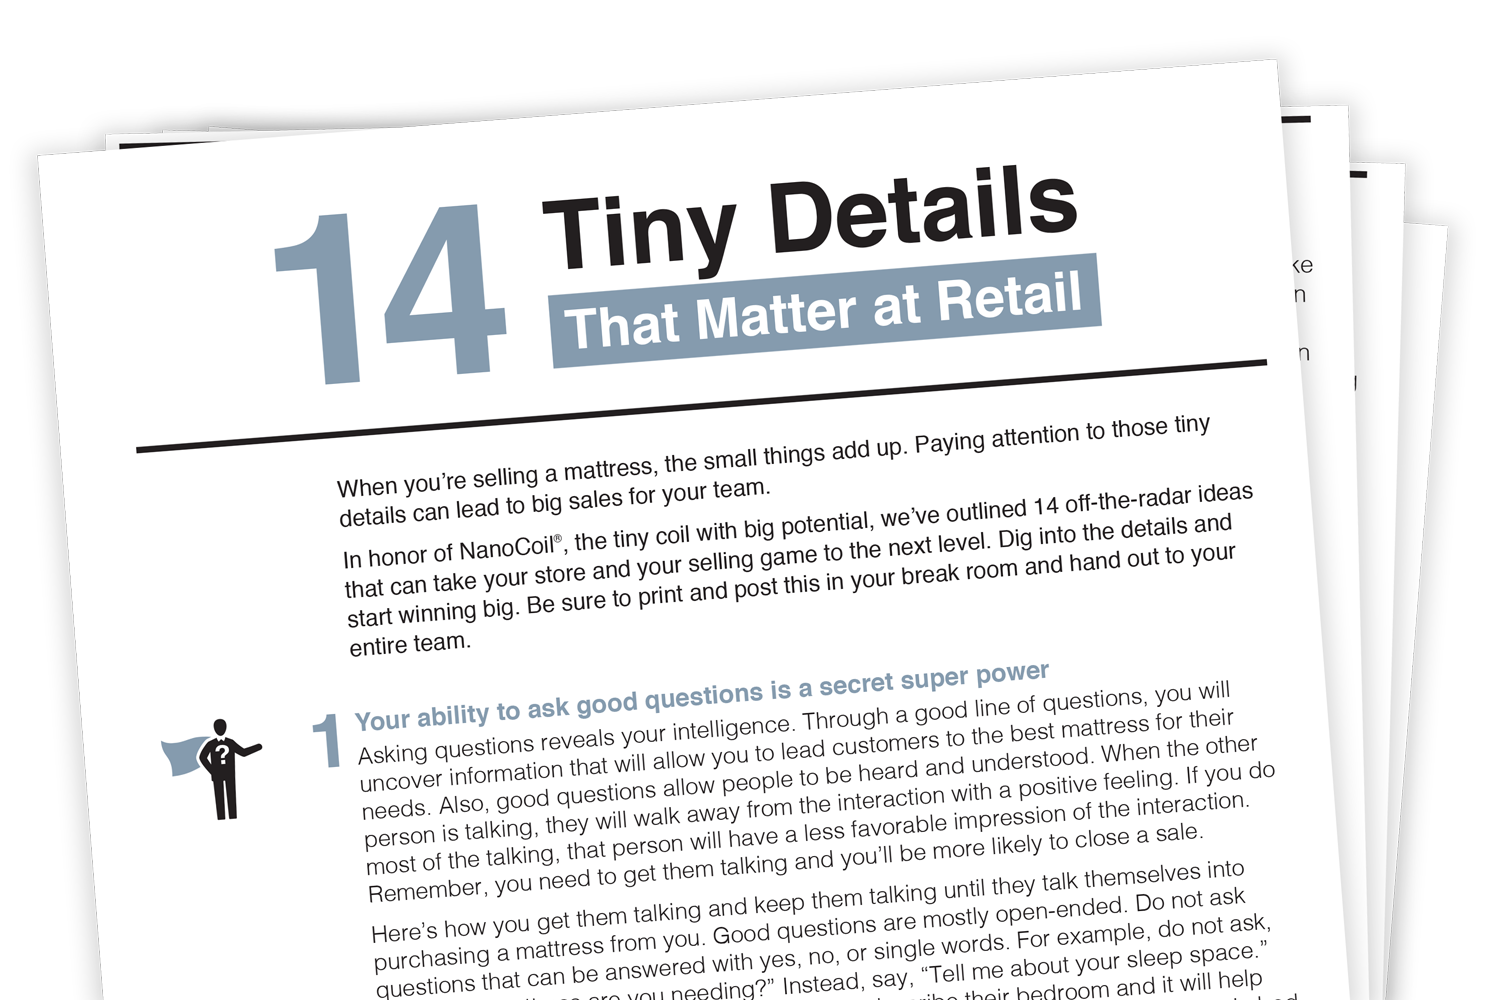 14 Tiny Details That Matter at Retail